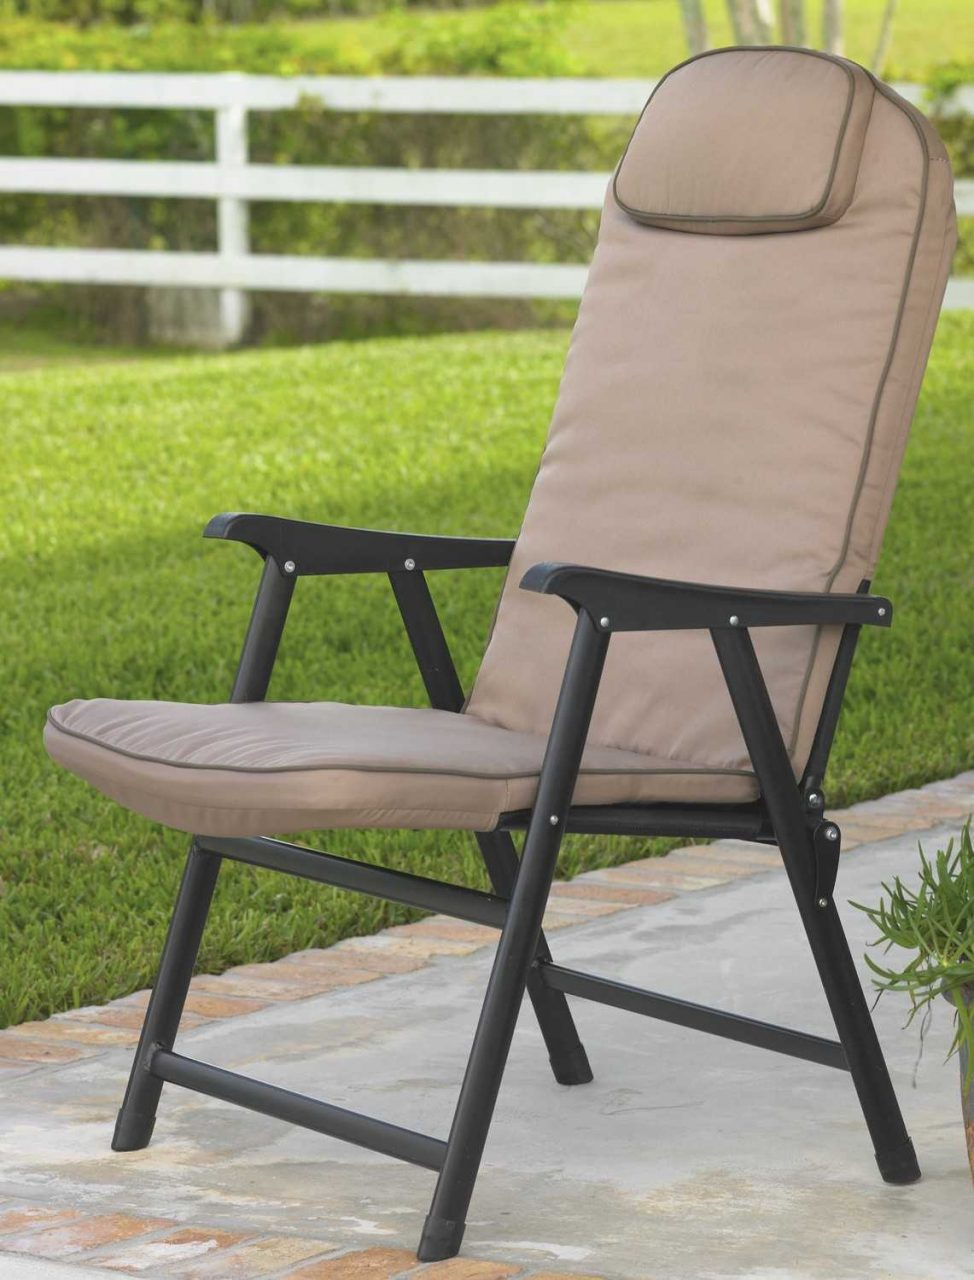 Heavy Duty Resin Patio Chairs Maribointelligentsolutionsco